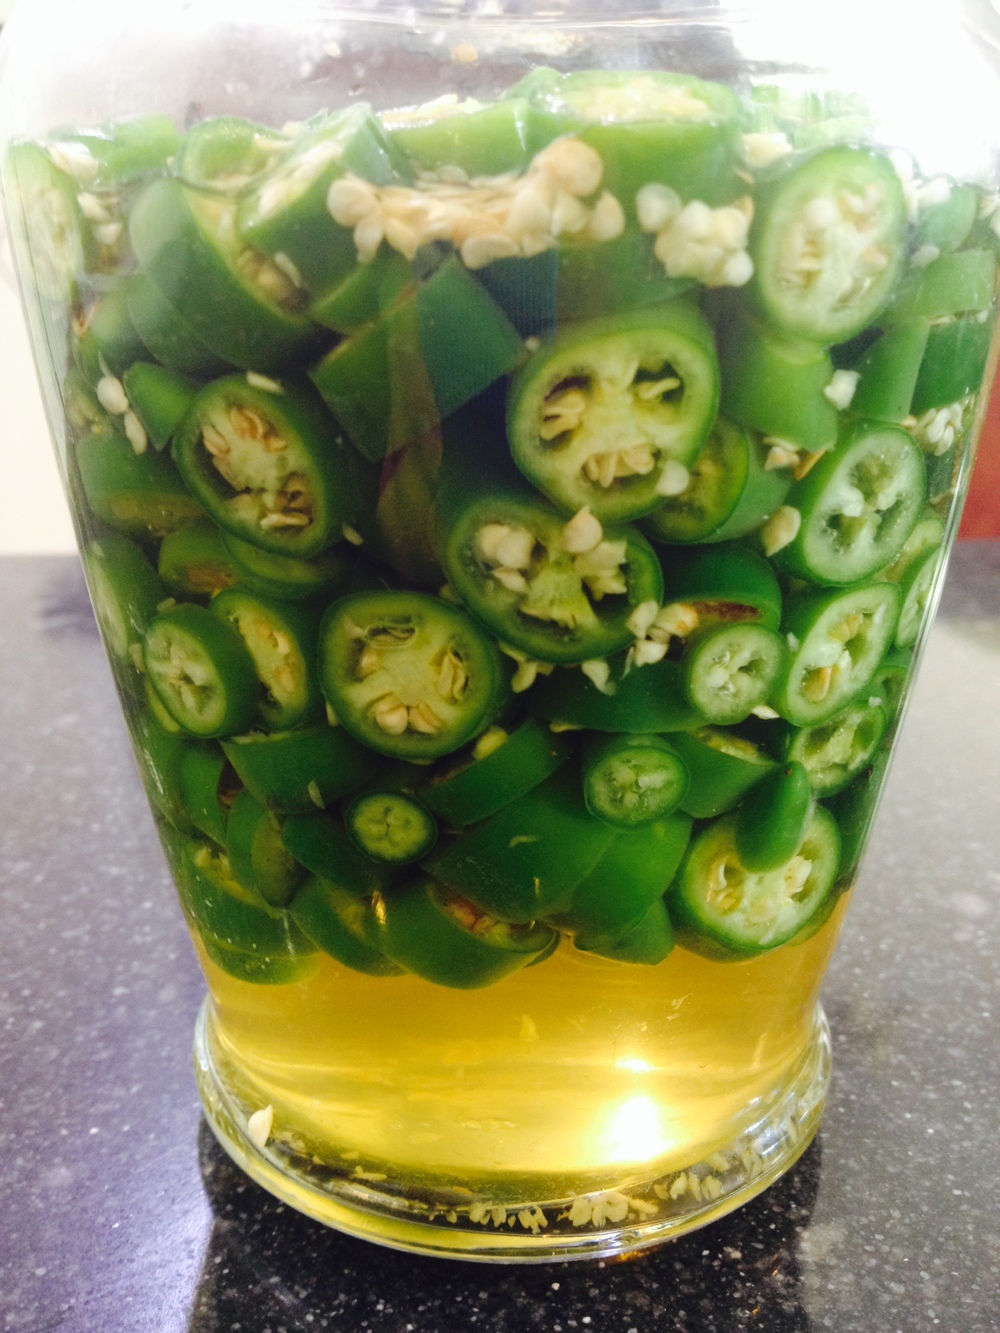 ... pepper is in season including jalepenos or even thai chili peppers